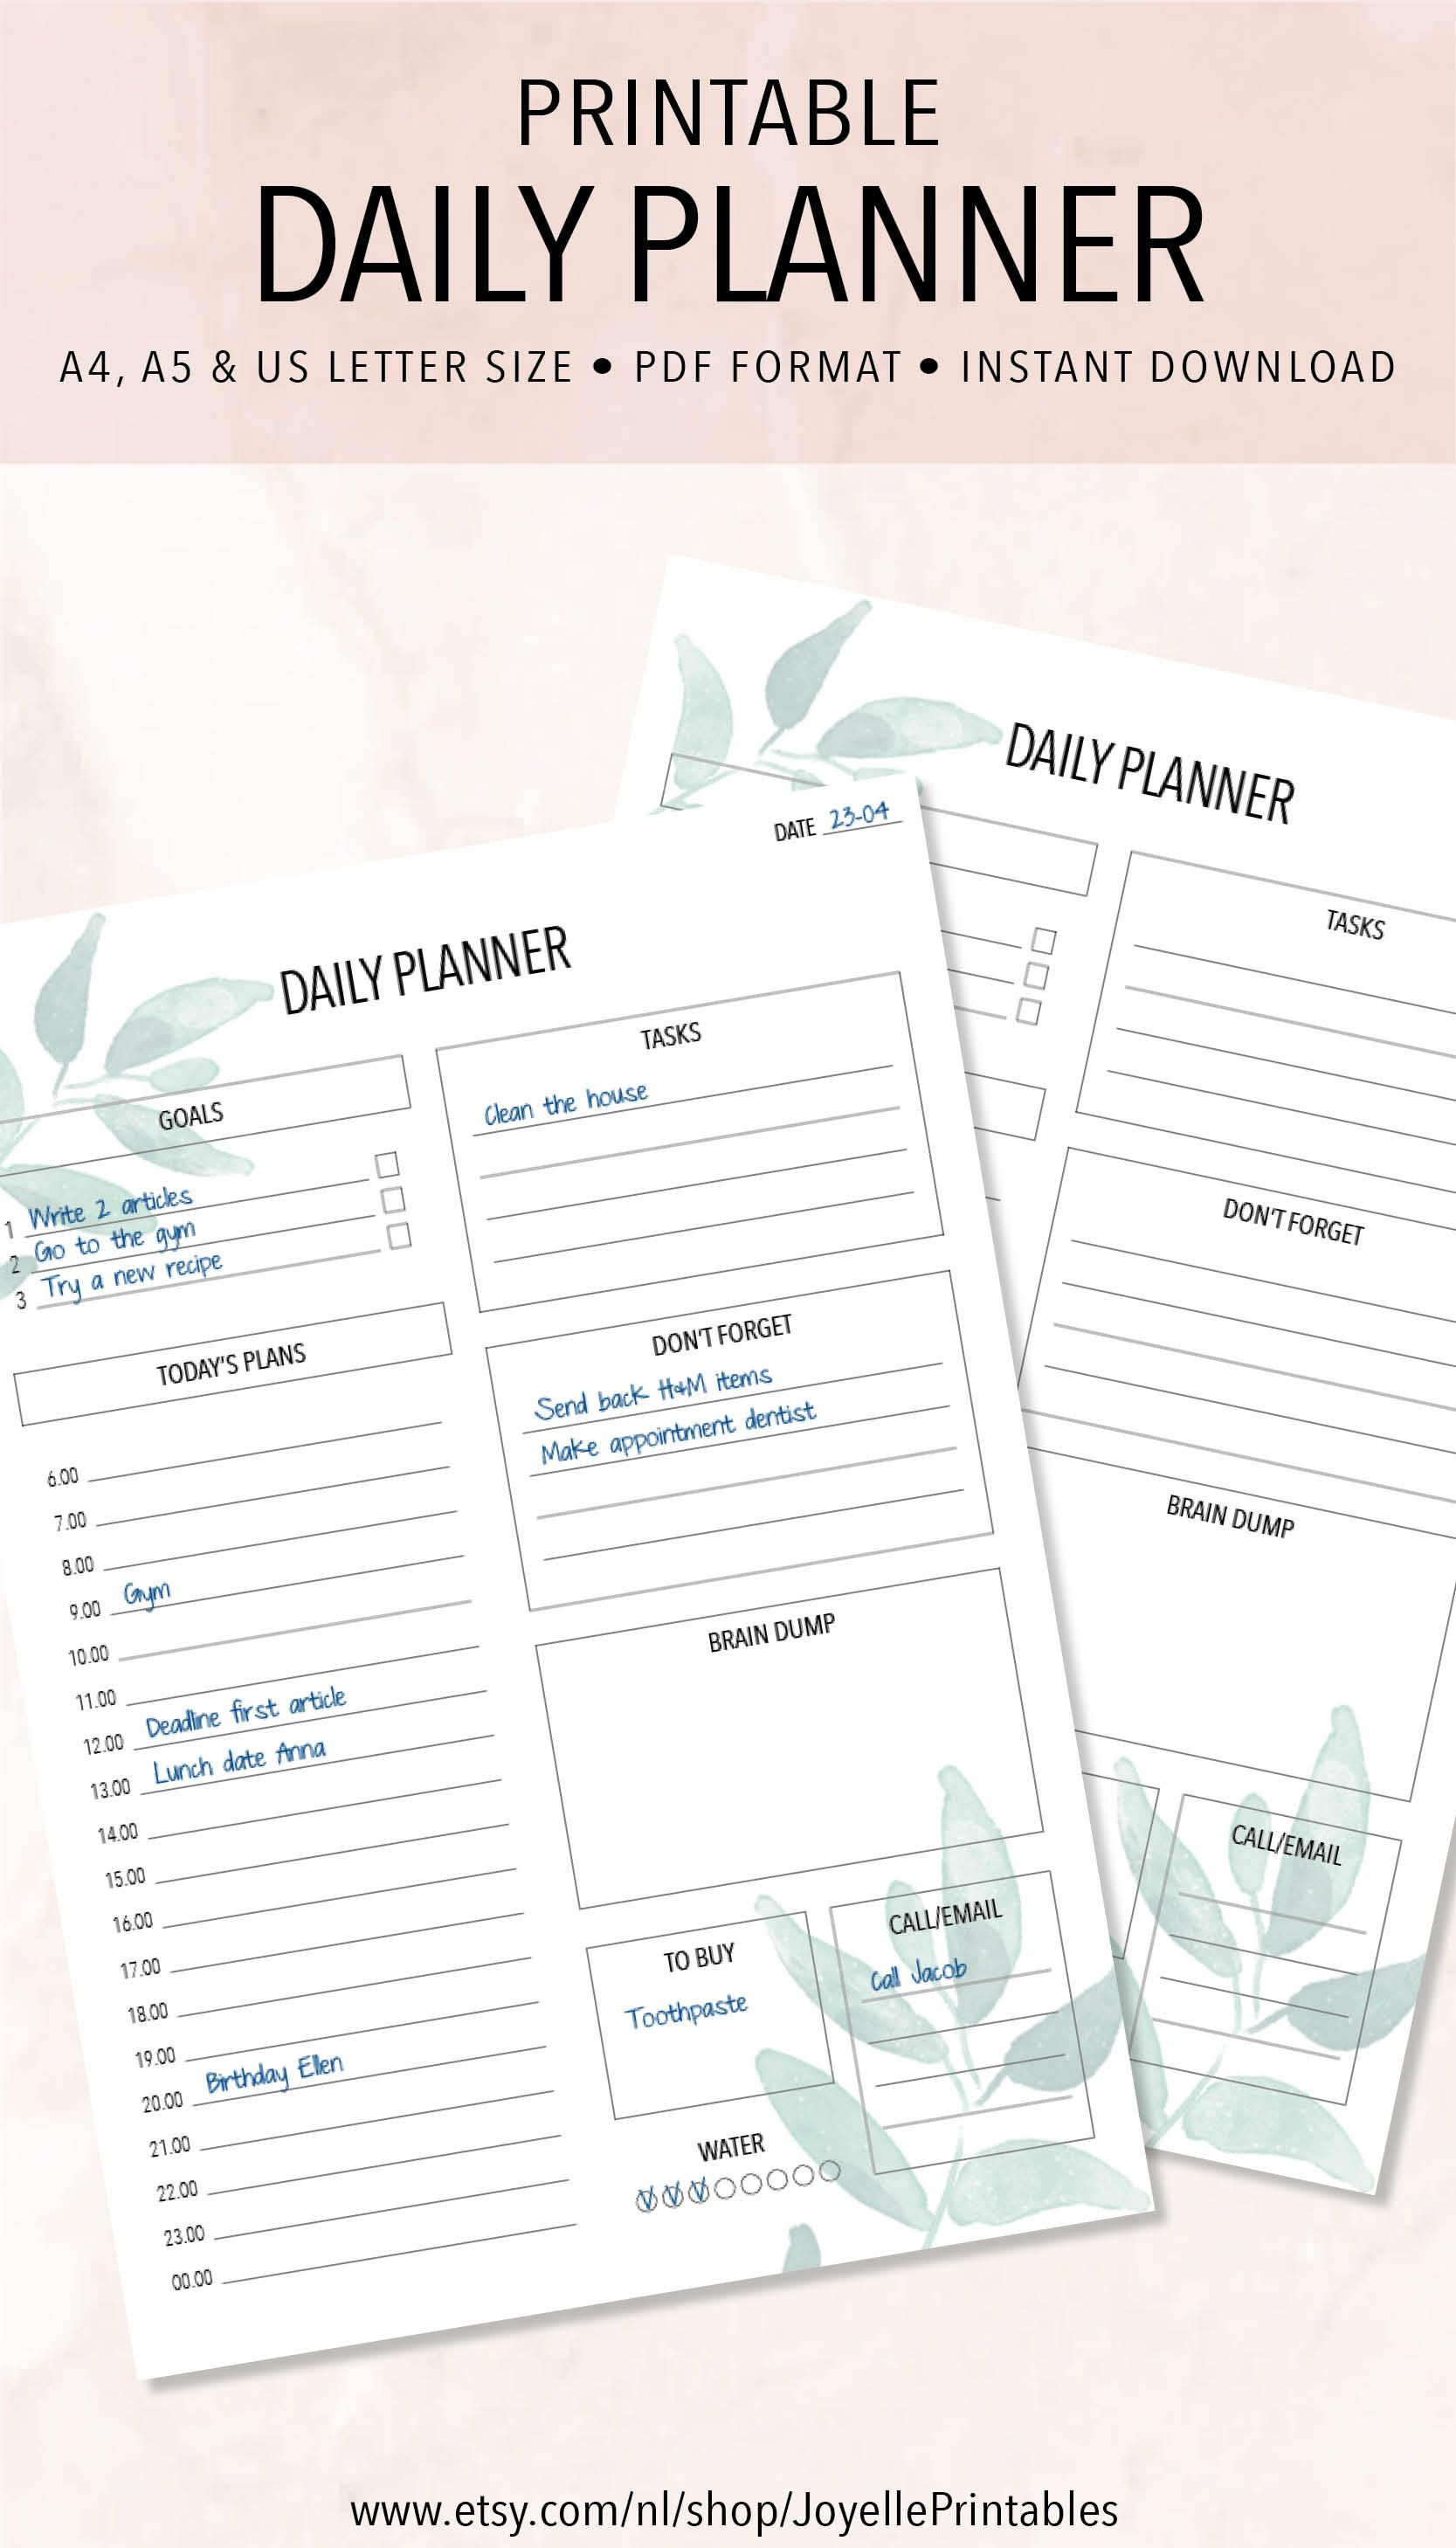 printable daily planner work planner this planner will help you organize your days and accomplish your goals httpswwwetsycomshopjoyelleprintables